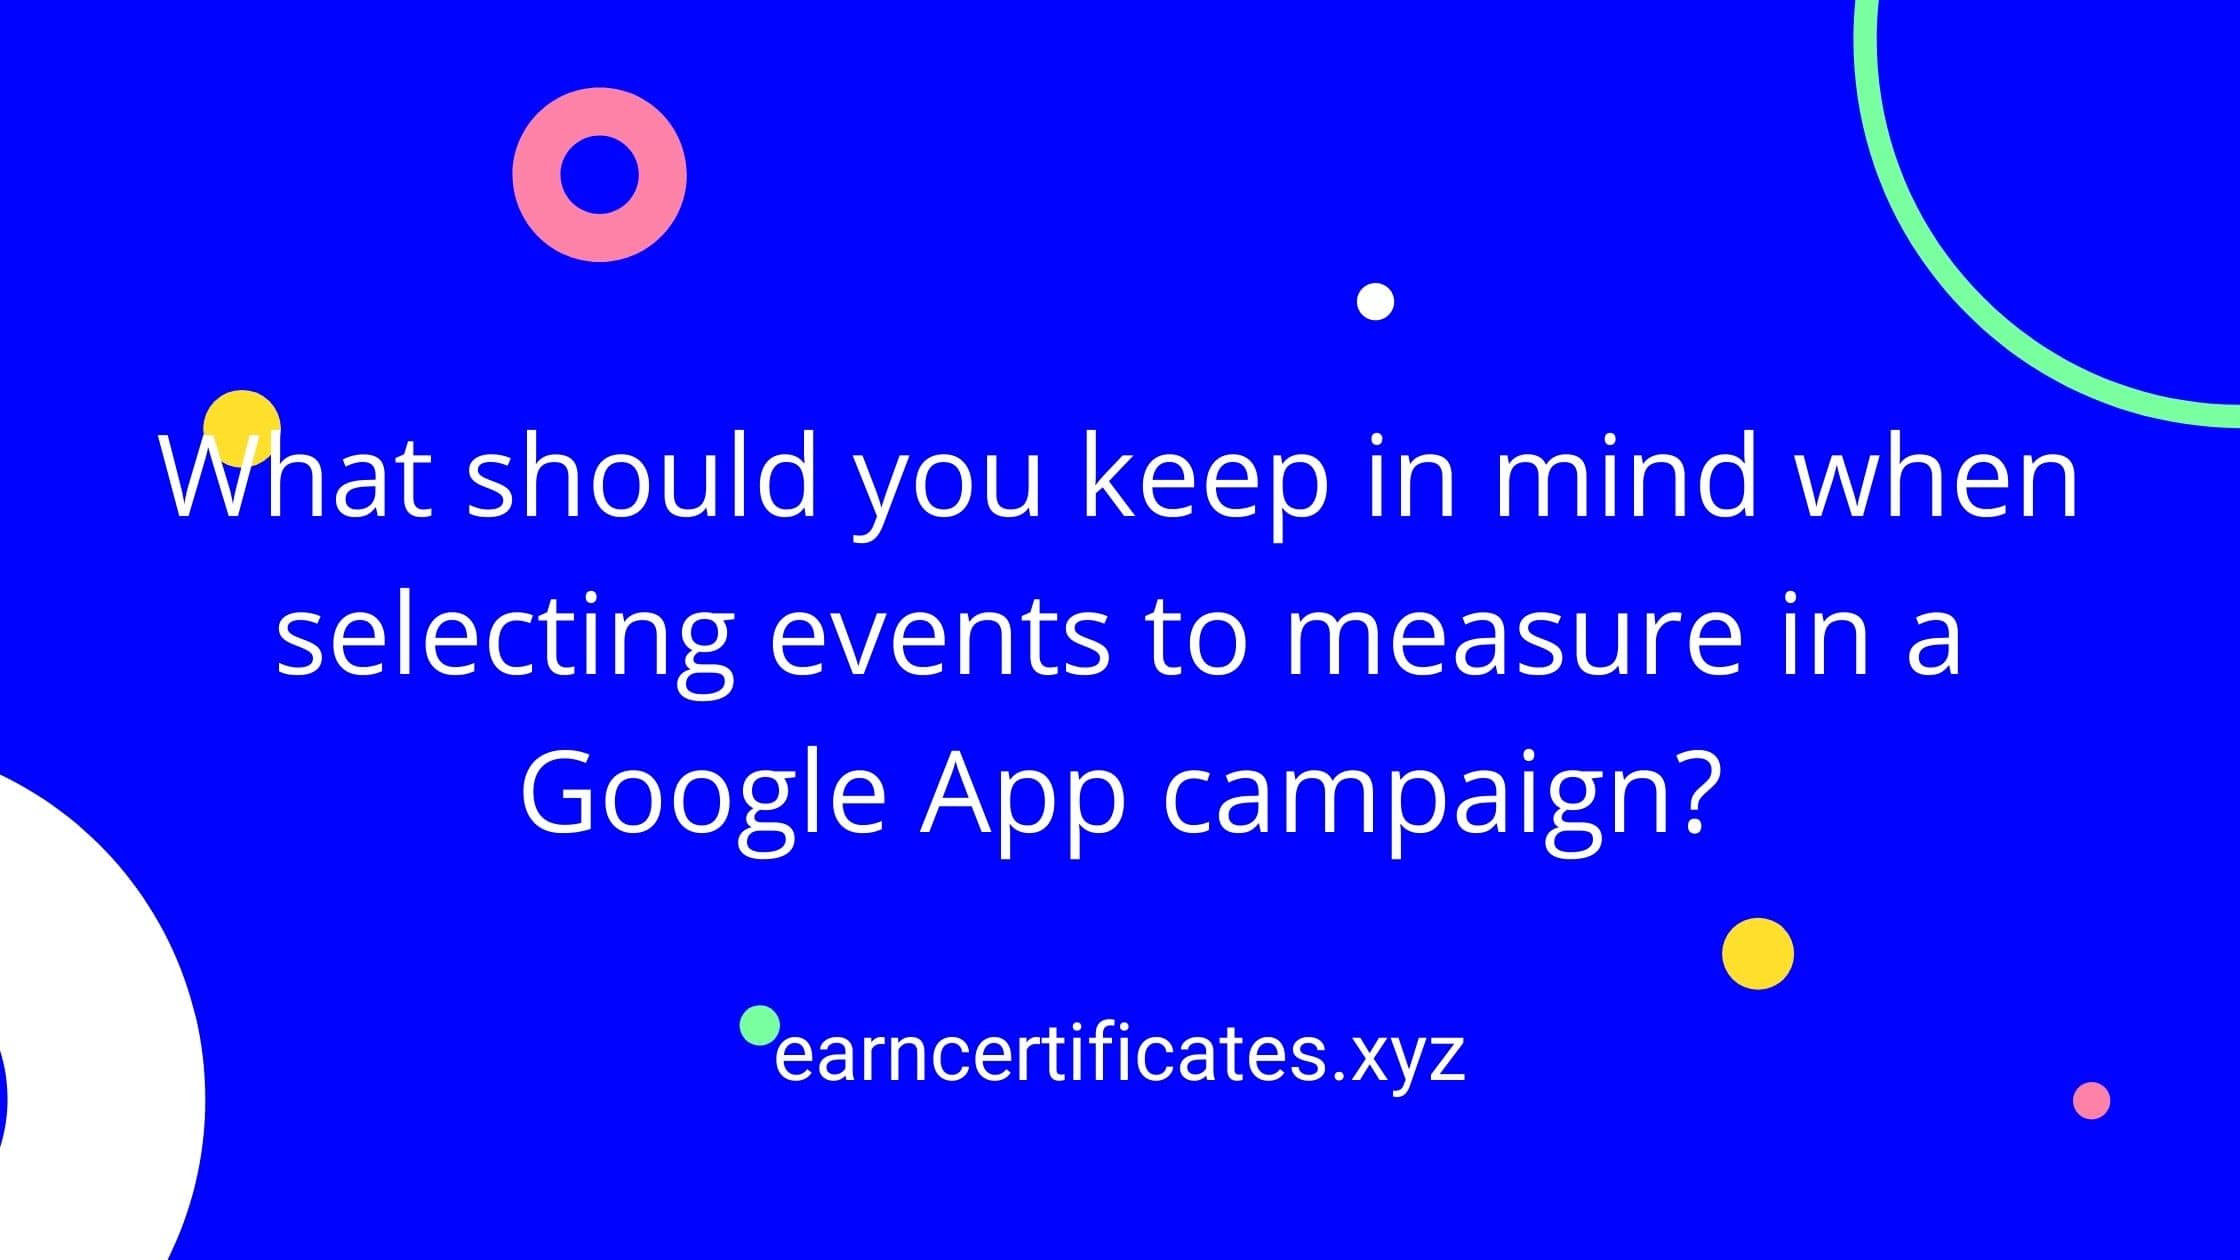 What should you keep in mind when selecting events to measure in a Google App campaign?